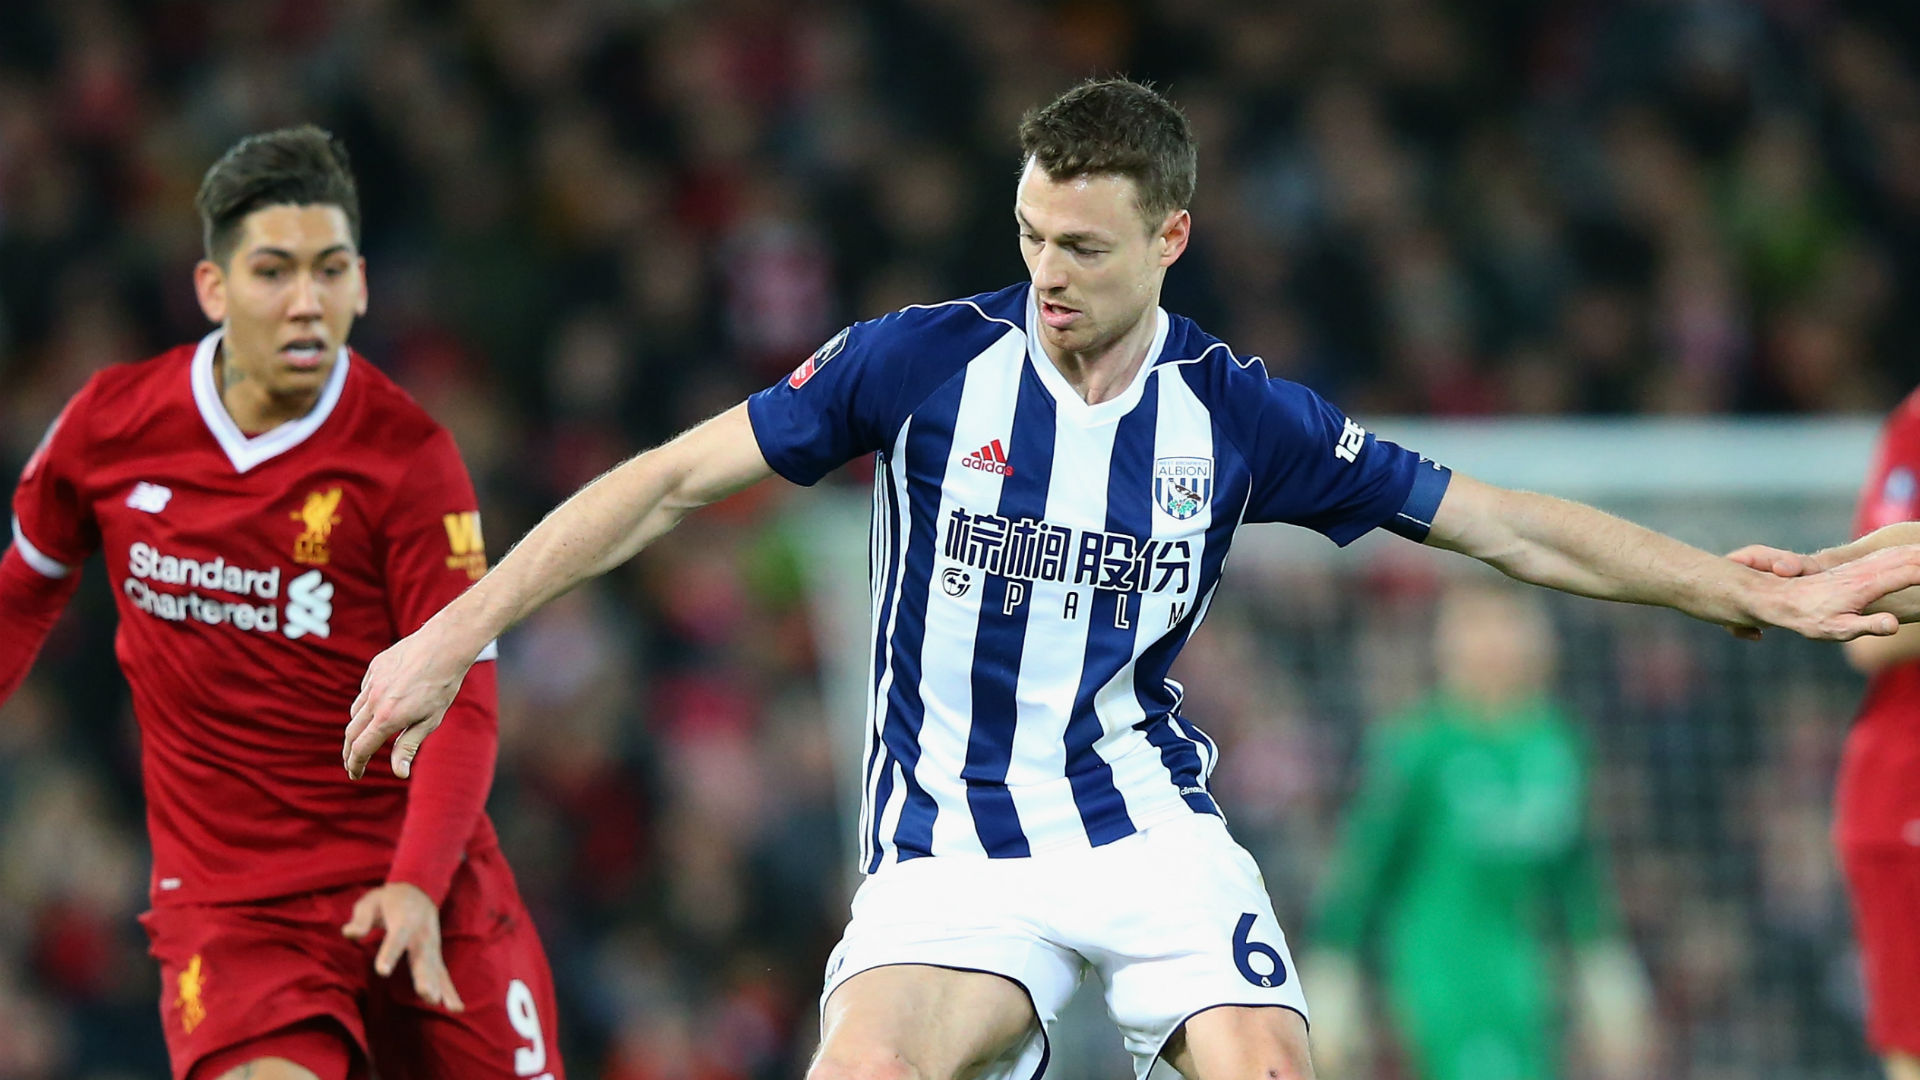 jonny evans roberto firmino west brom liverpool fa cup 1vqq0x5e3sh1511qdnzf0htwkq - ROUND-UP of 30/1/2018 TRANSFER NEWS, DONE DEALS AND RUMOURS